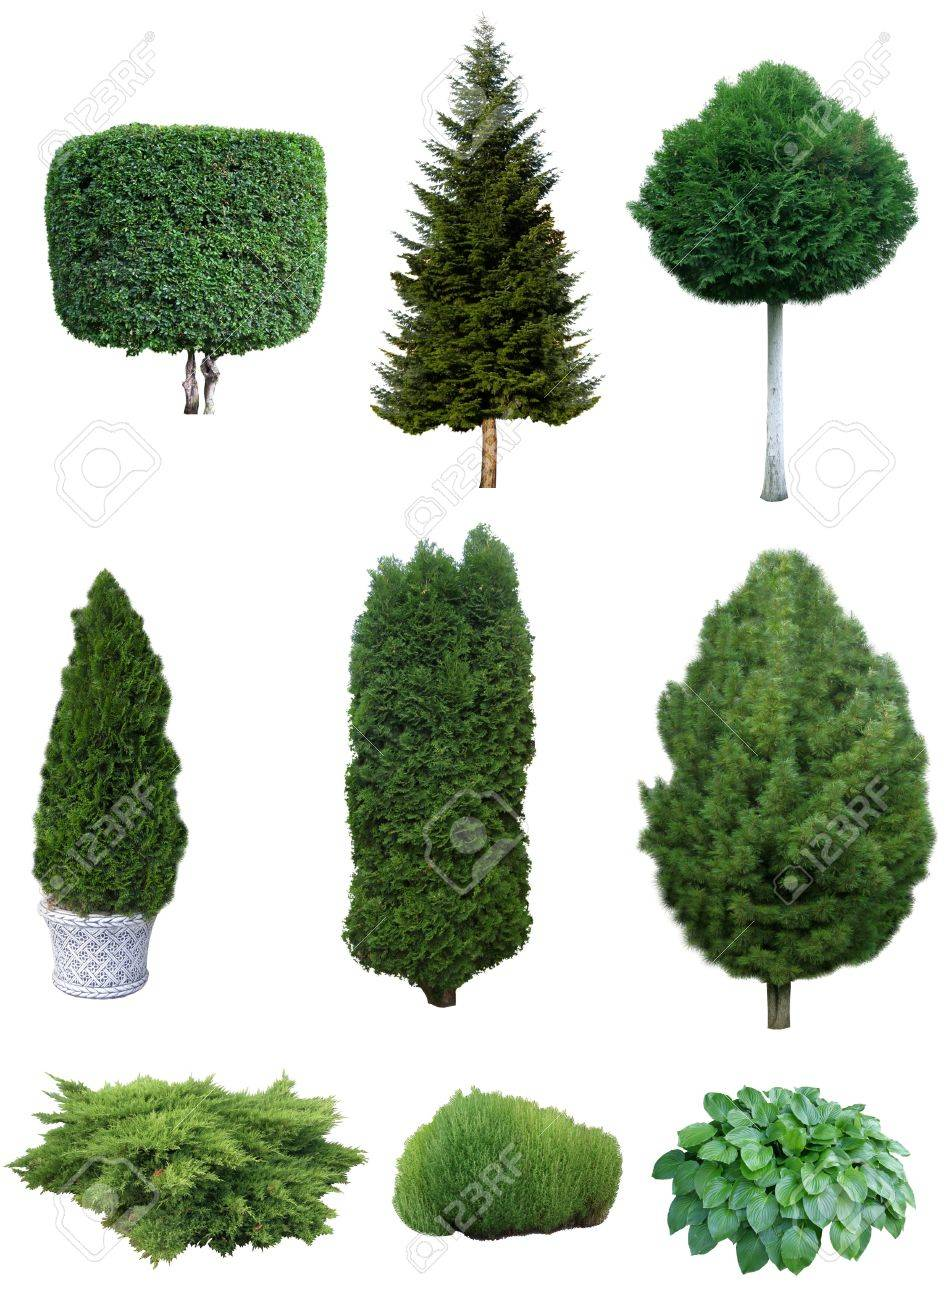 Trees And Shrubs Set Of Various Evergreen Trees And Shrubs For The Garden Design